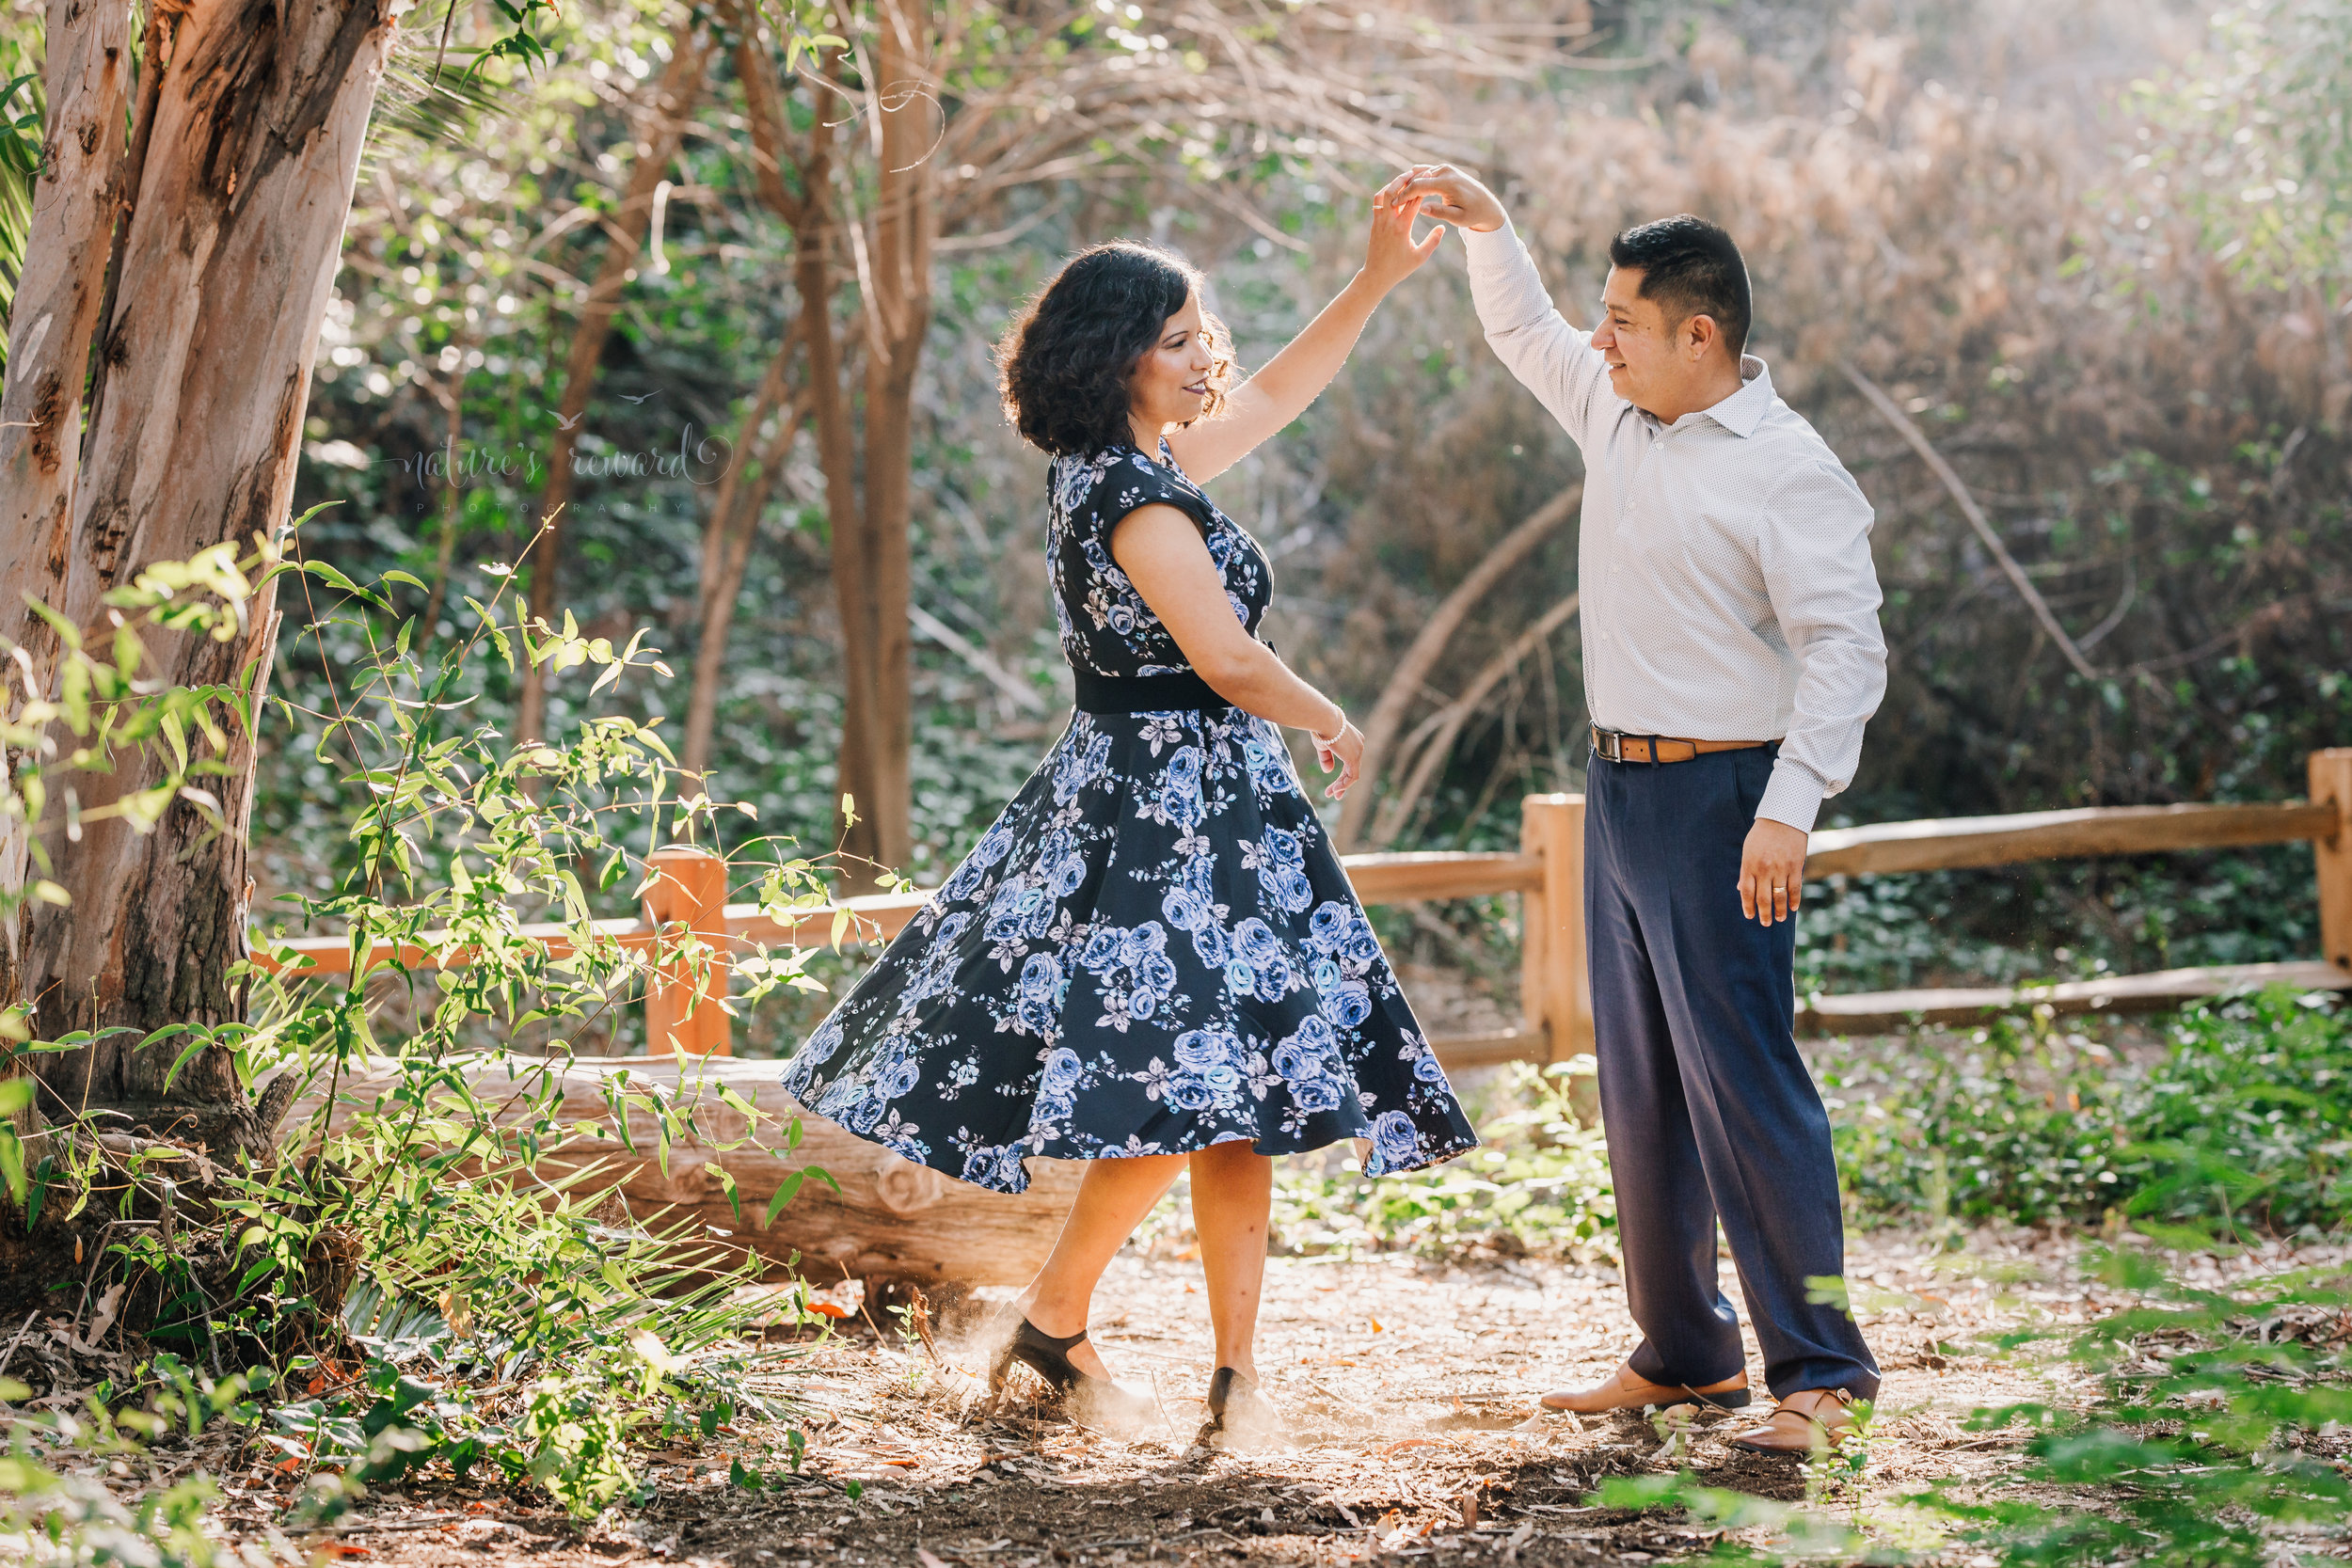 Beautiful couple wearing blues and blue floral dress dance in the park in this gorgeous family photography portrait by Nature's Reward Photography.